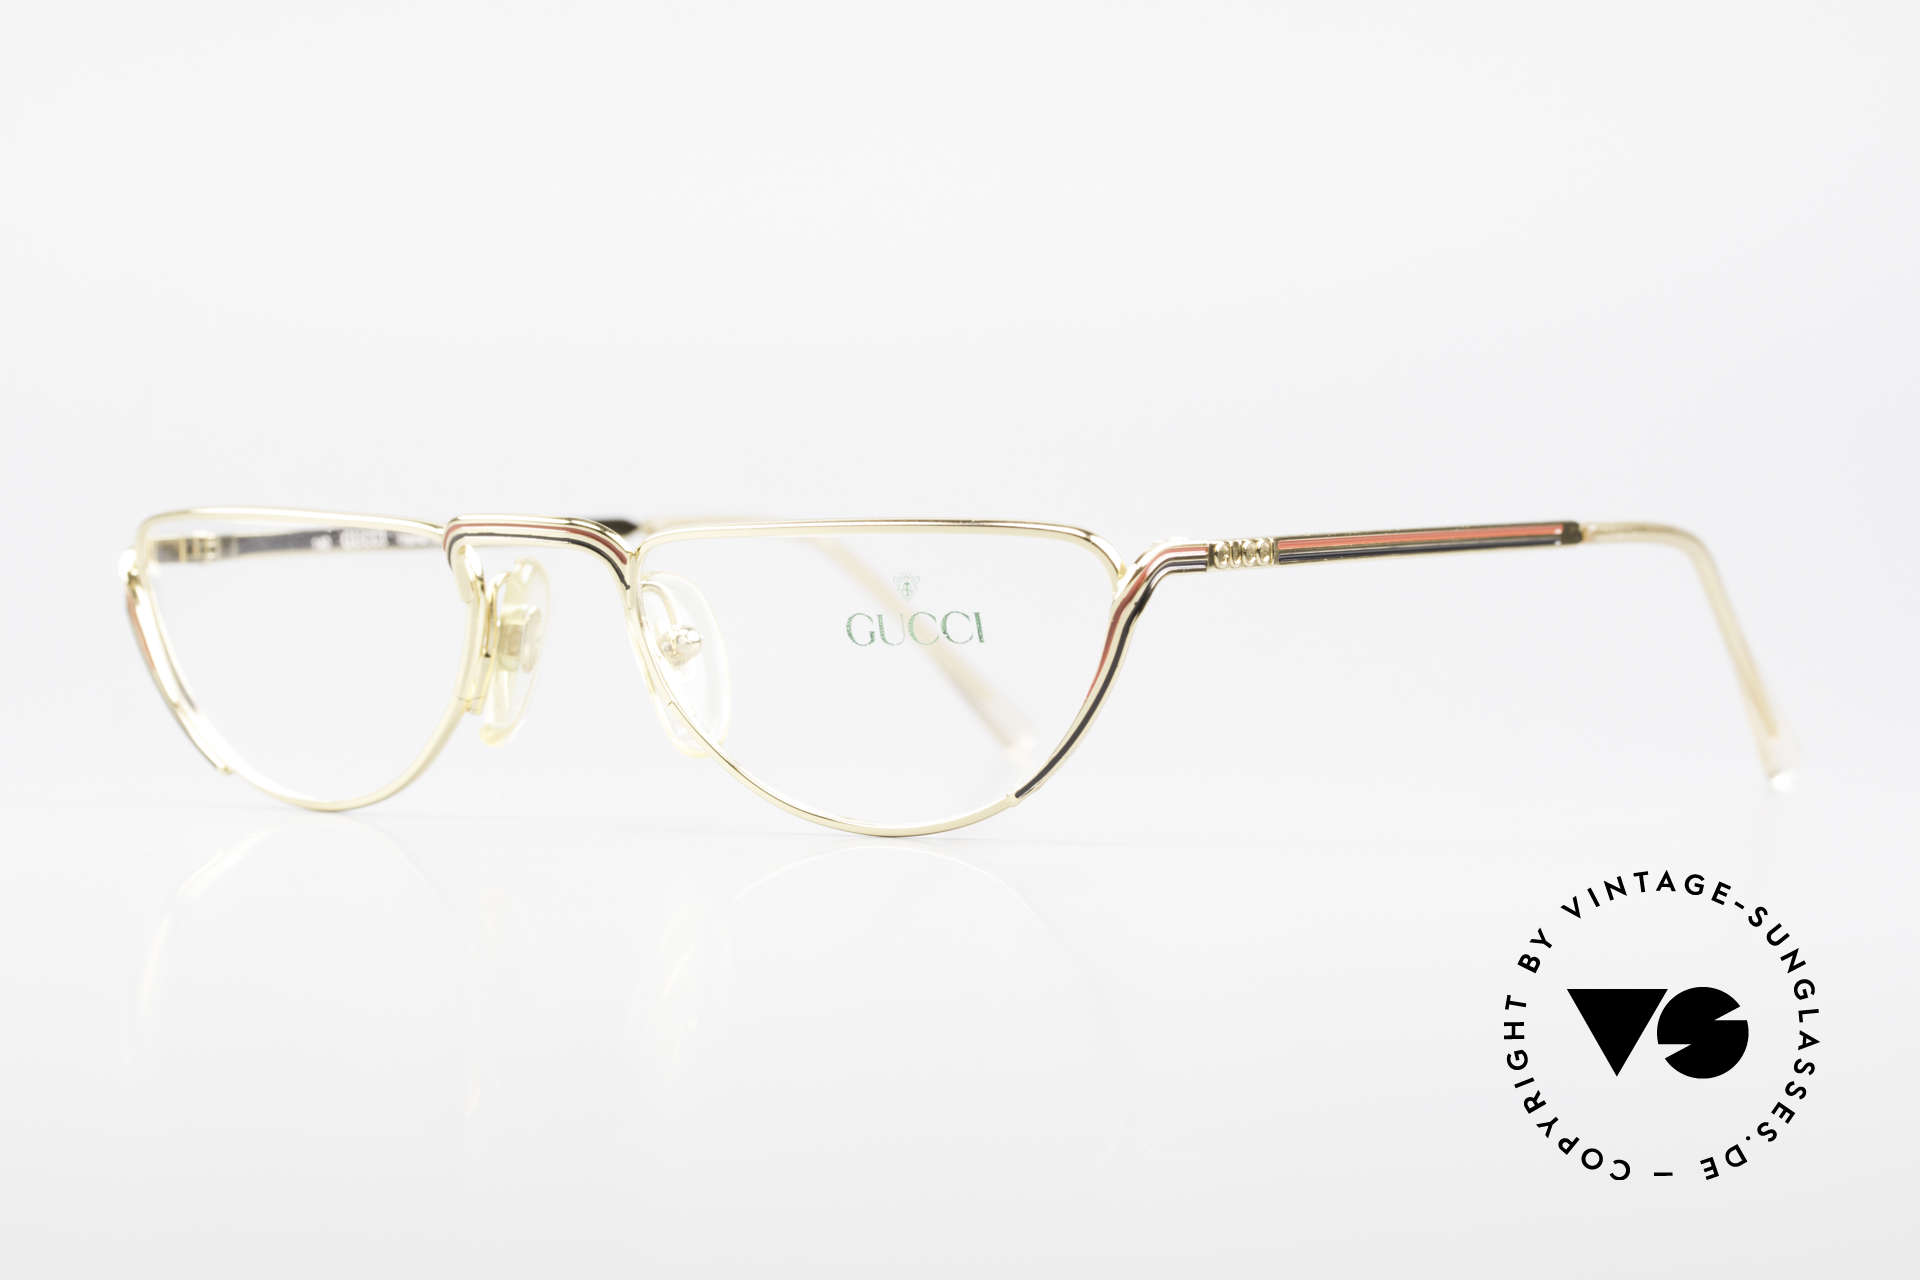 "Gucci 2203 80's Vintage Reading Glasses, gold frame with ""Gucci stripes"" in red and black, Made for Women"